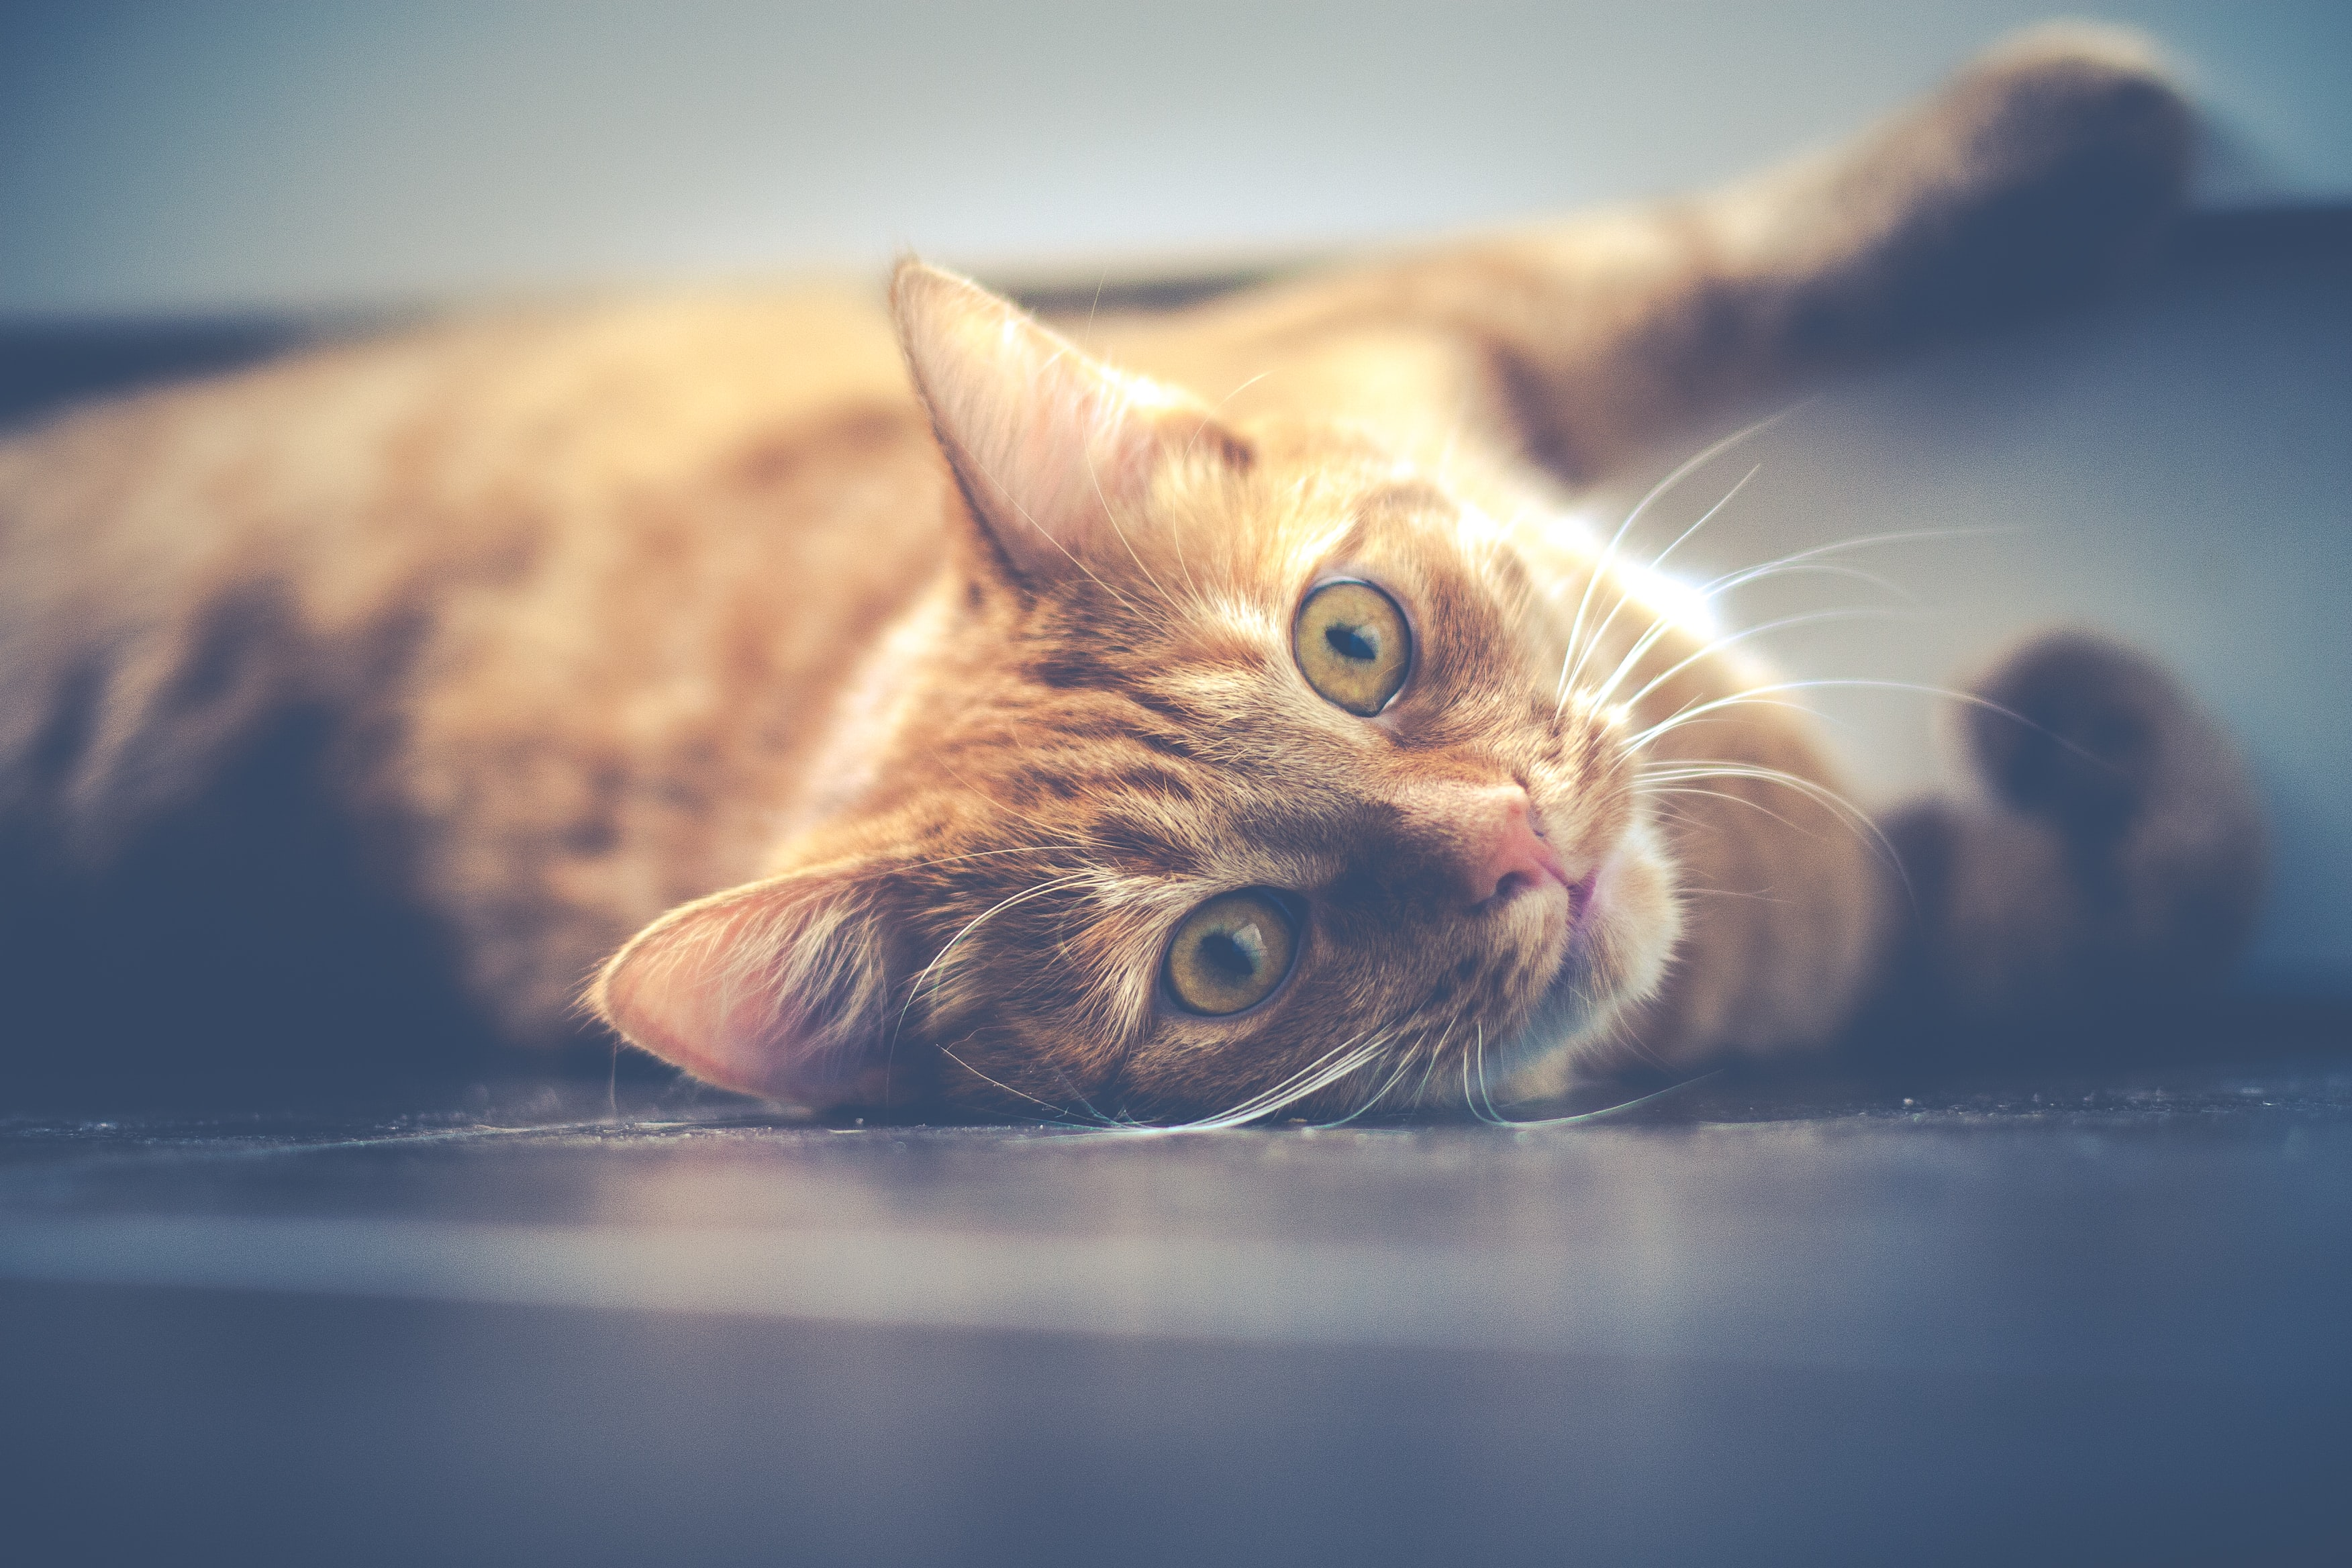 A ginger tabby lying on the floor and looking at the camera expectantly